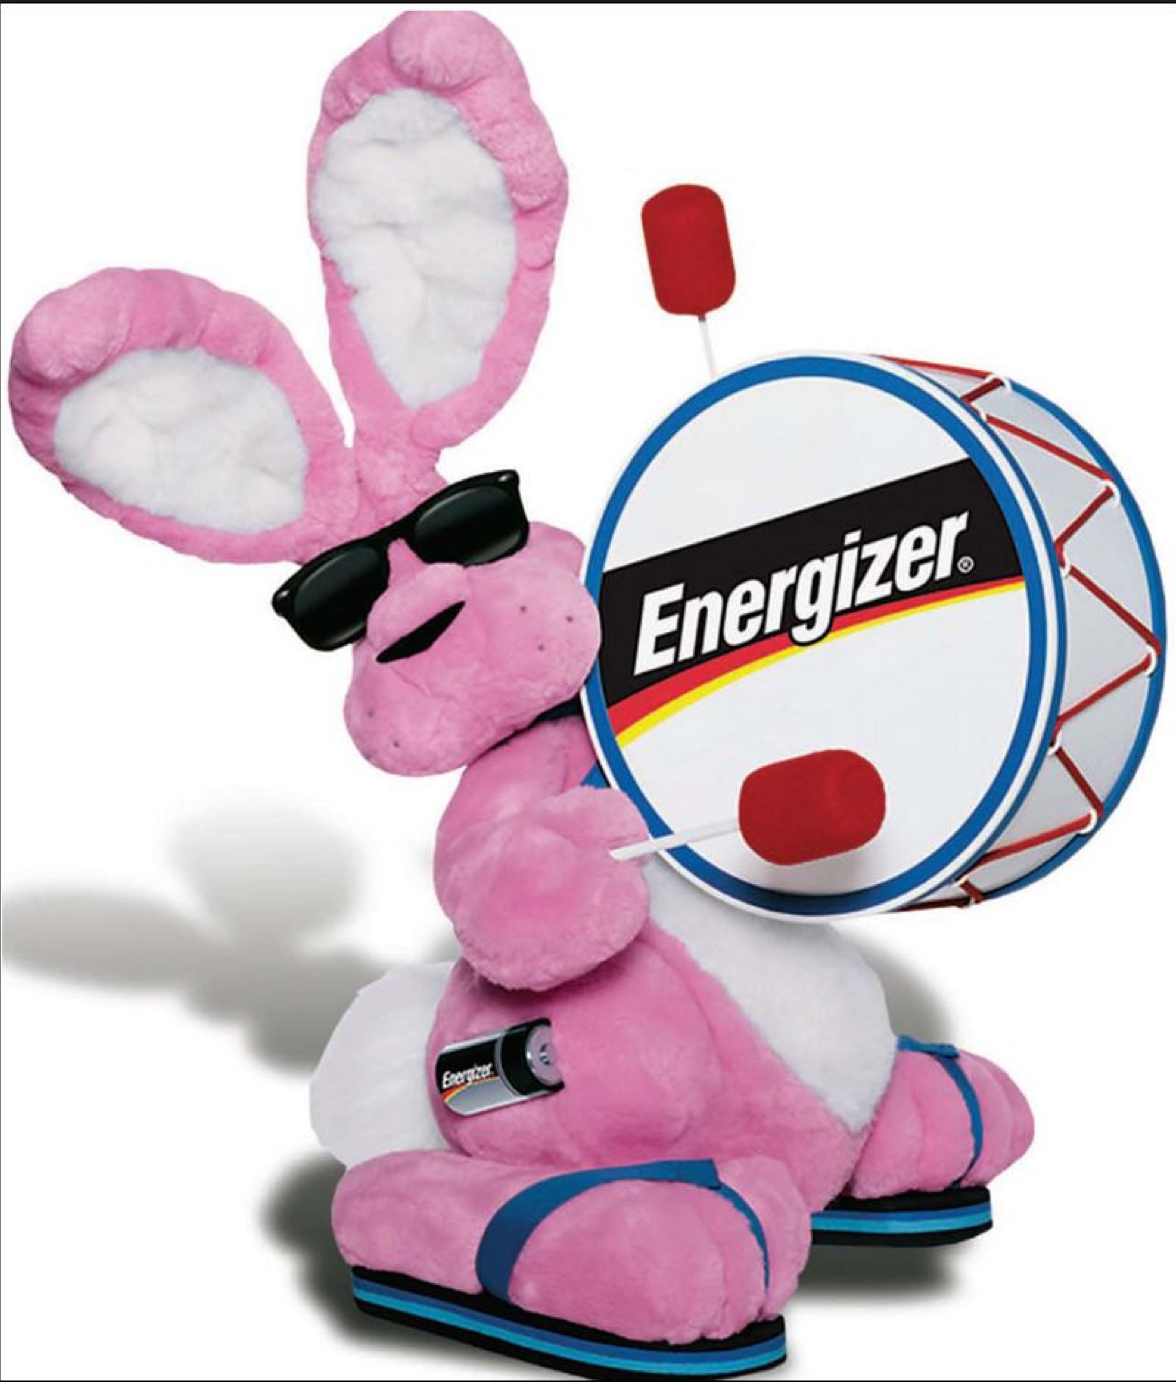 Energizer Bunny - Energizer Bunny PNG